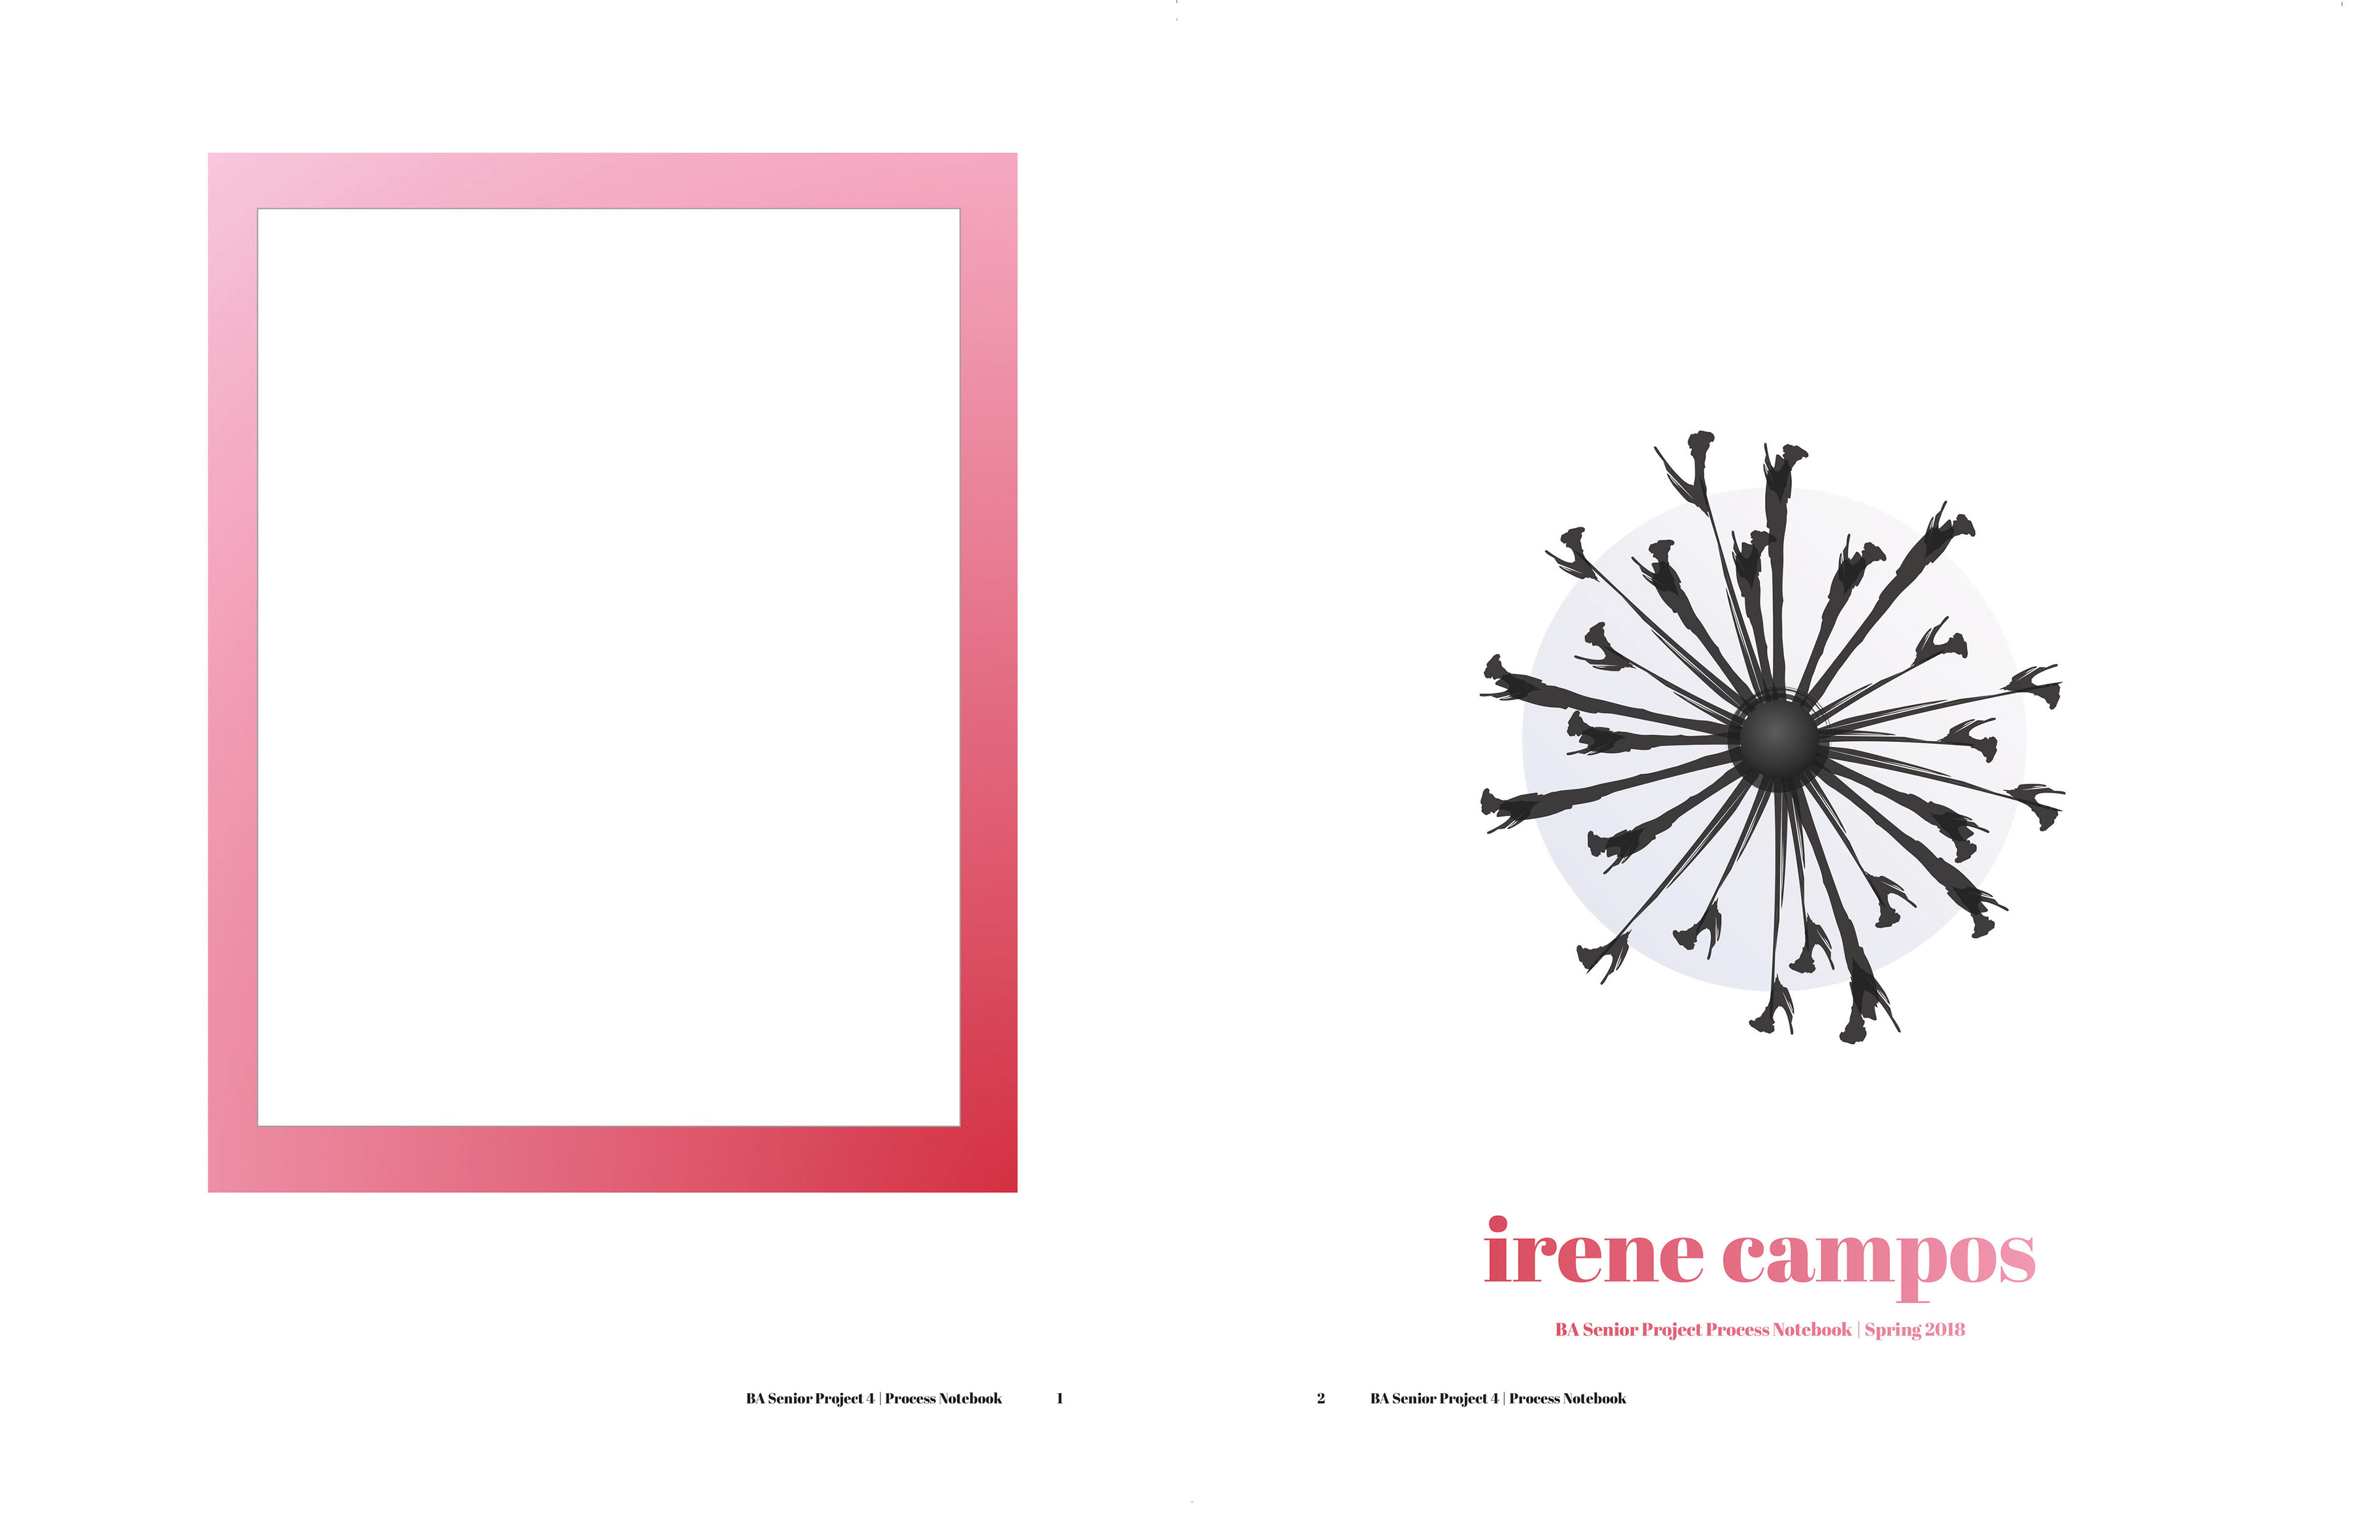 Irene Campos - dsgn 197: project 4 - process notebook